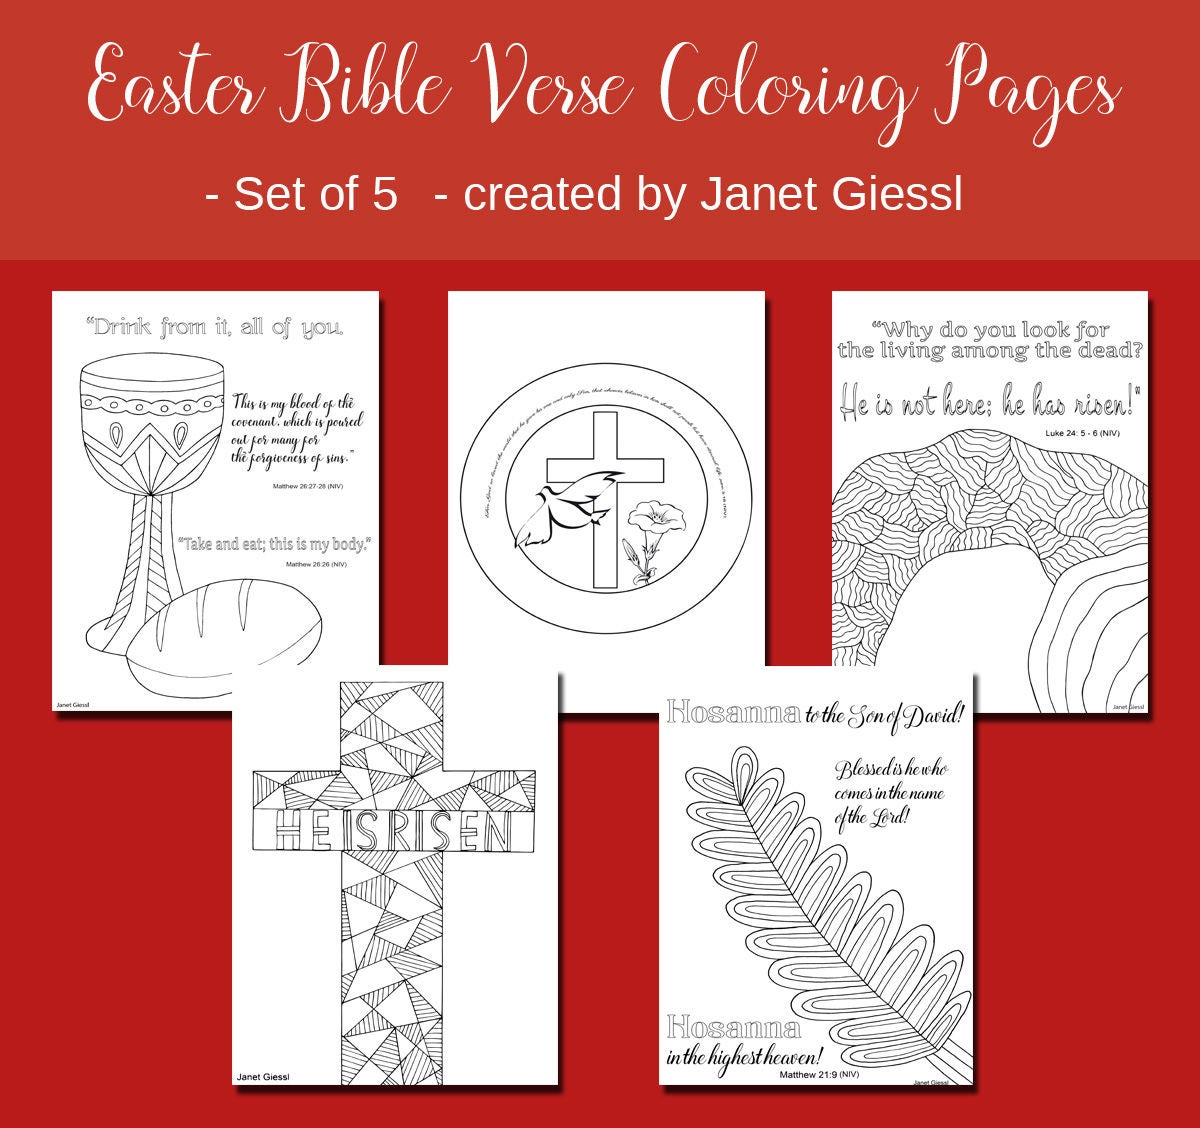 Easter Bible Verse Coloring Pages Set of 5